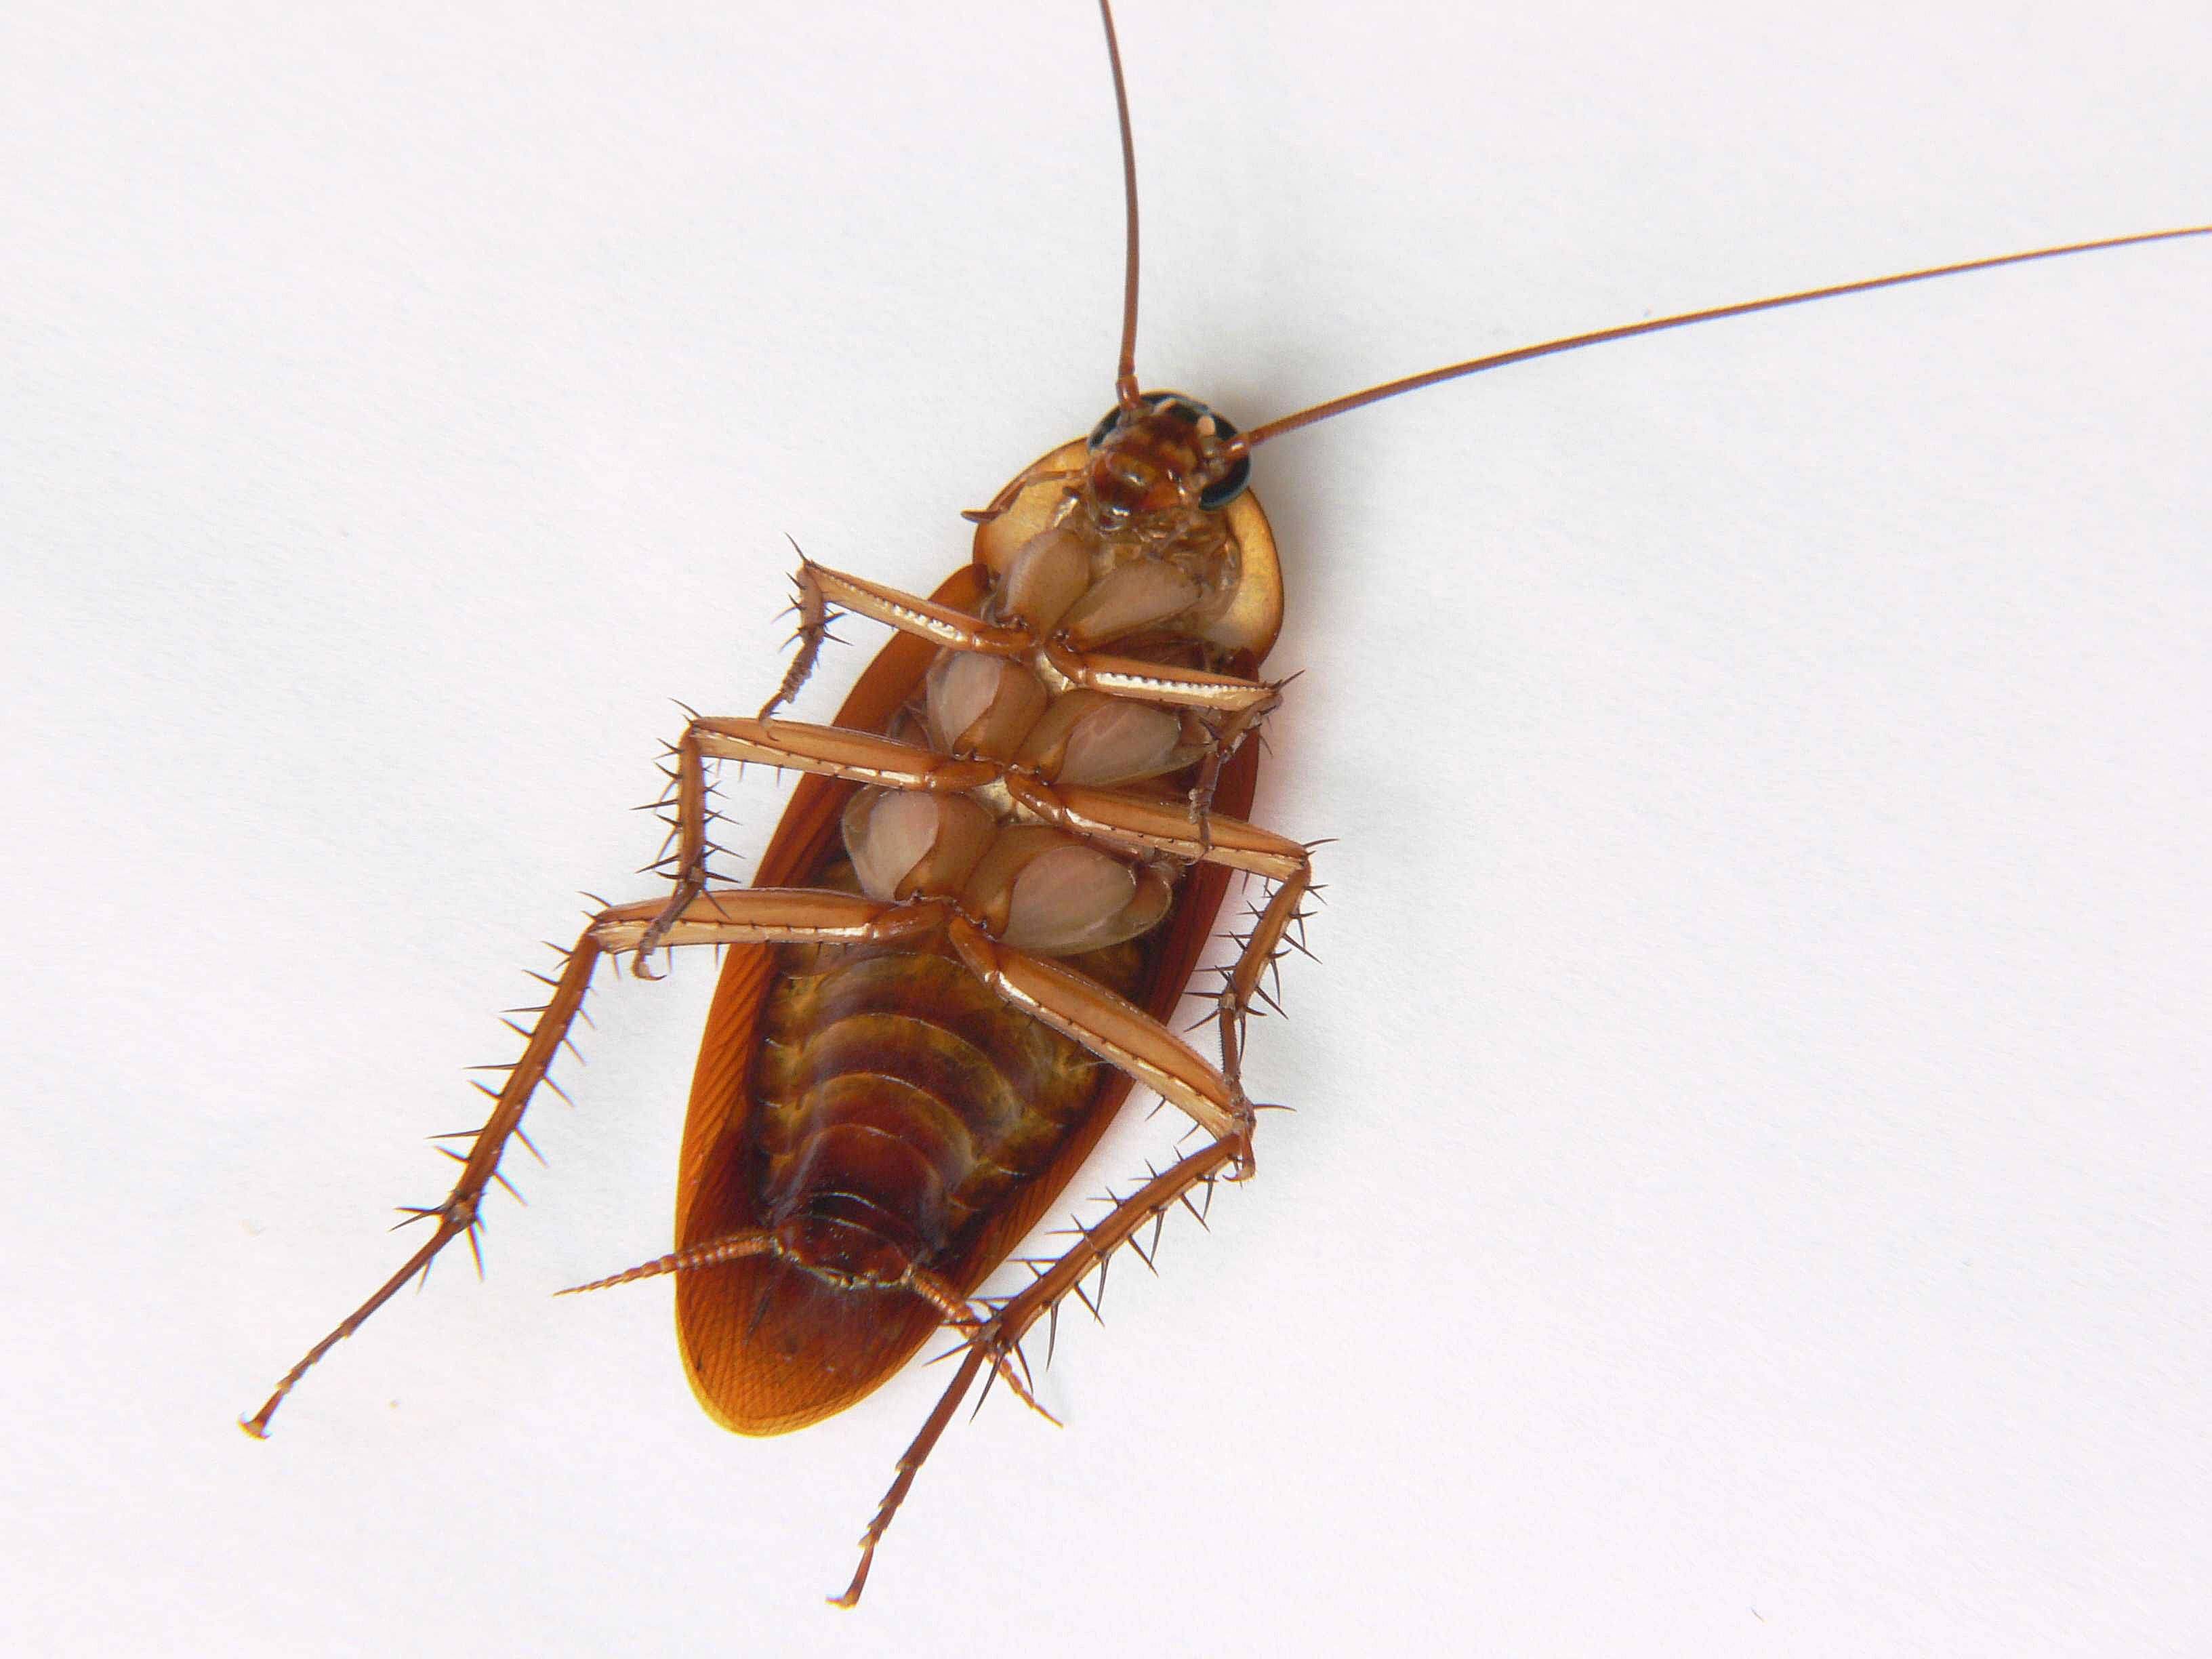 How to Get Rid of Roaches in Your Garage